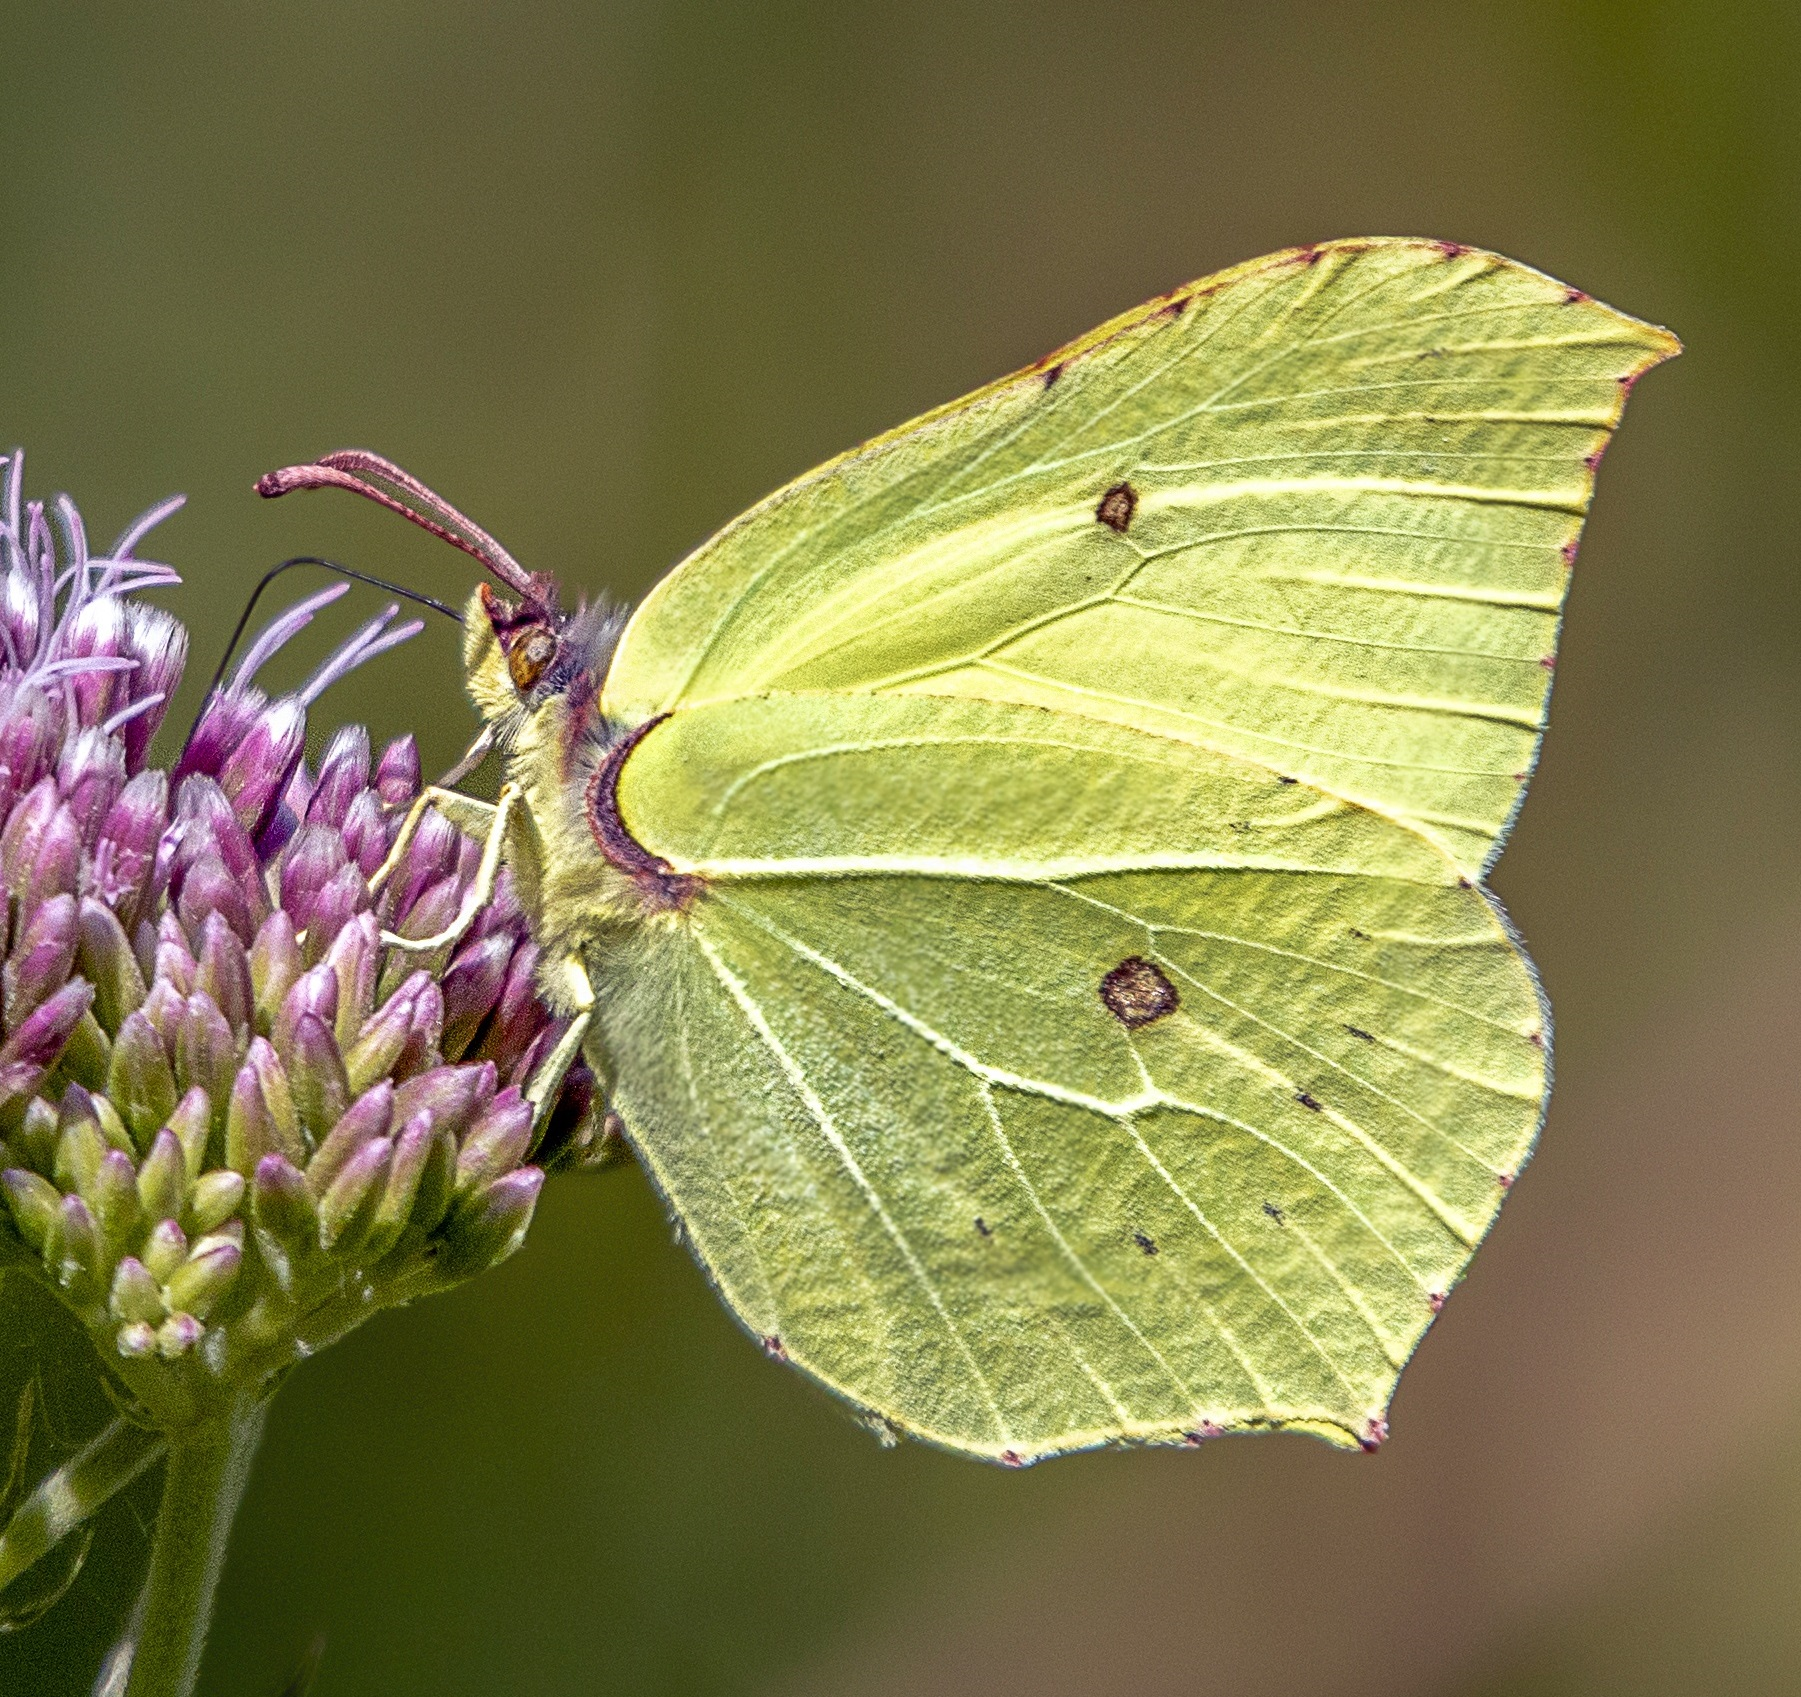 Nearly 400 species of invertebrate have been identified at Carr Lodge